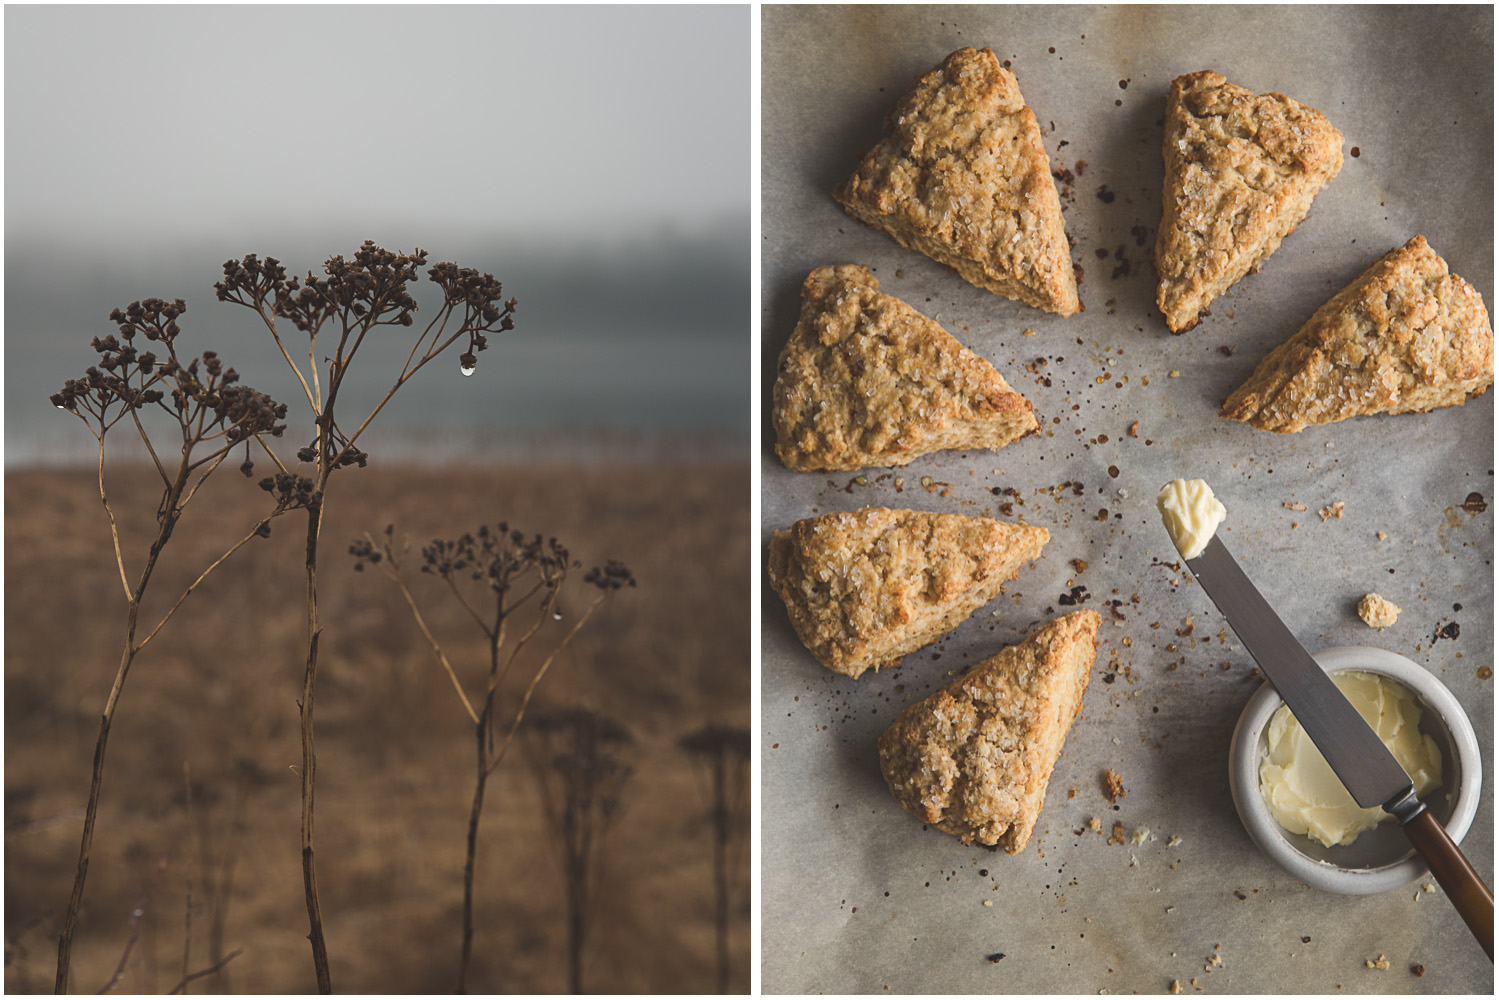 Rainy morning with brown sugar scones